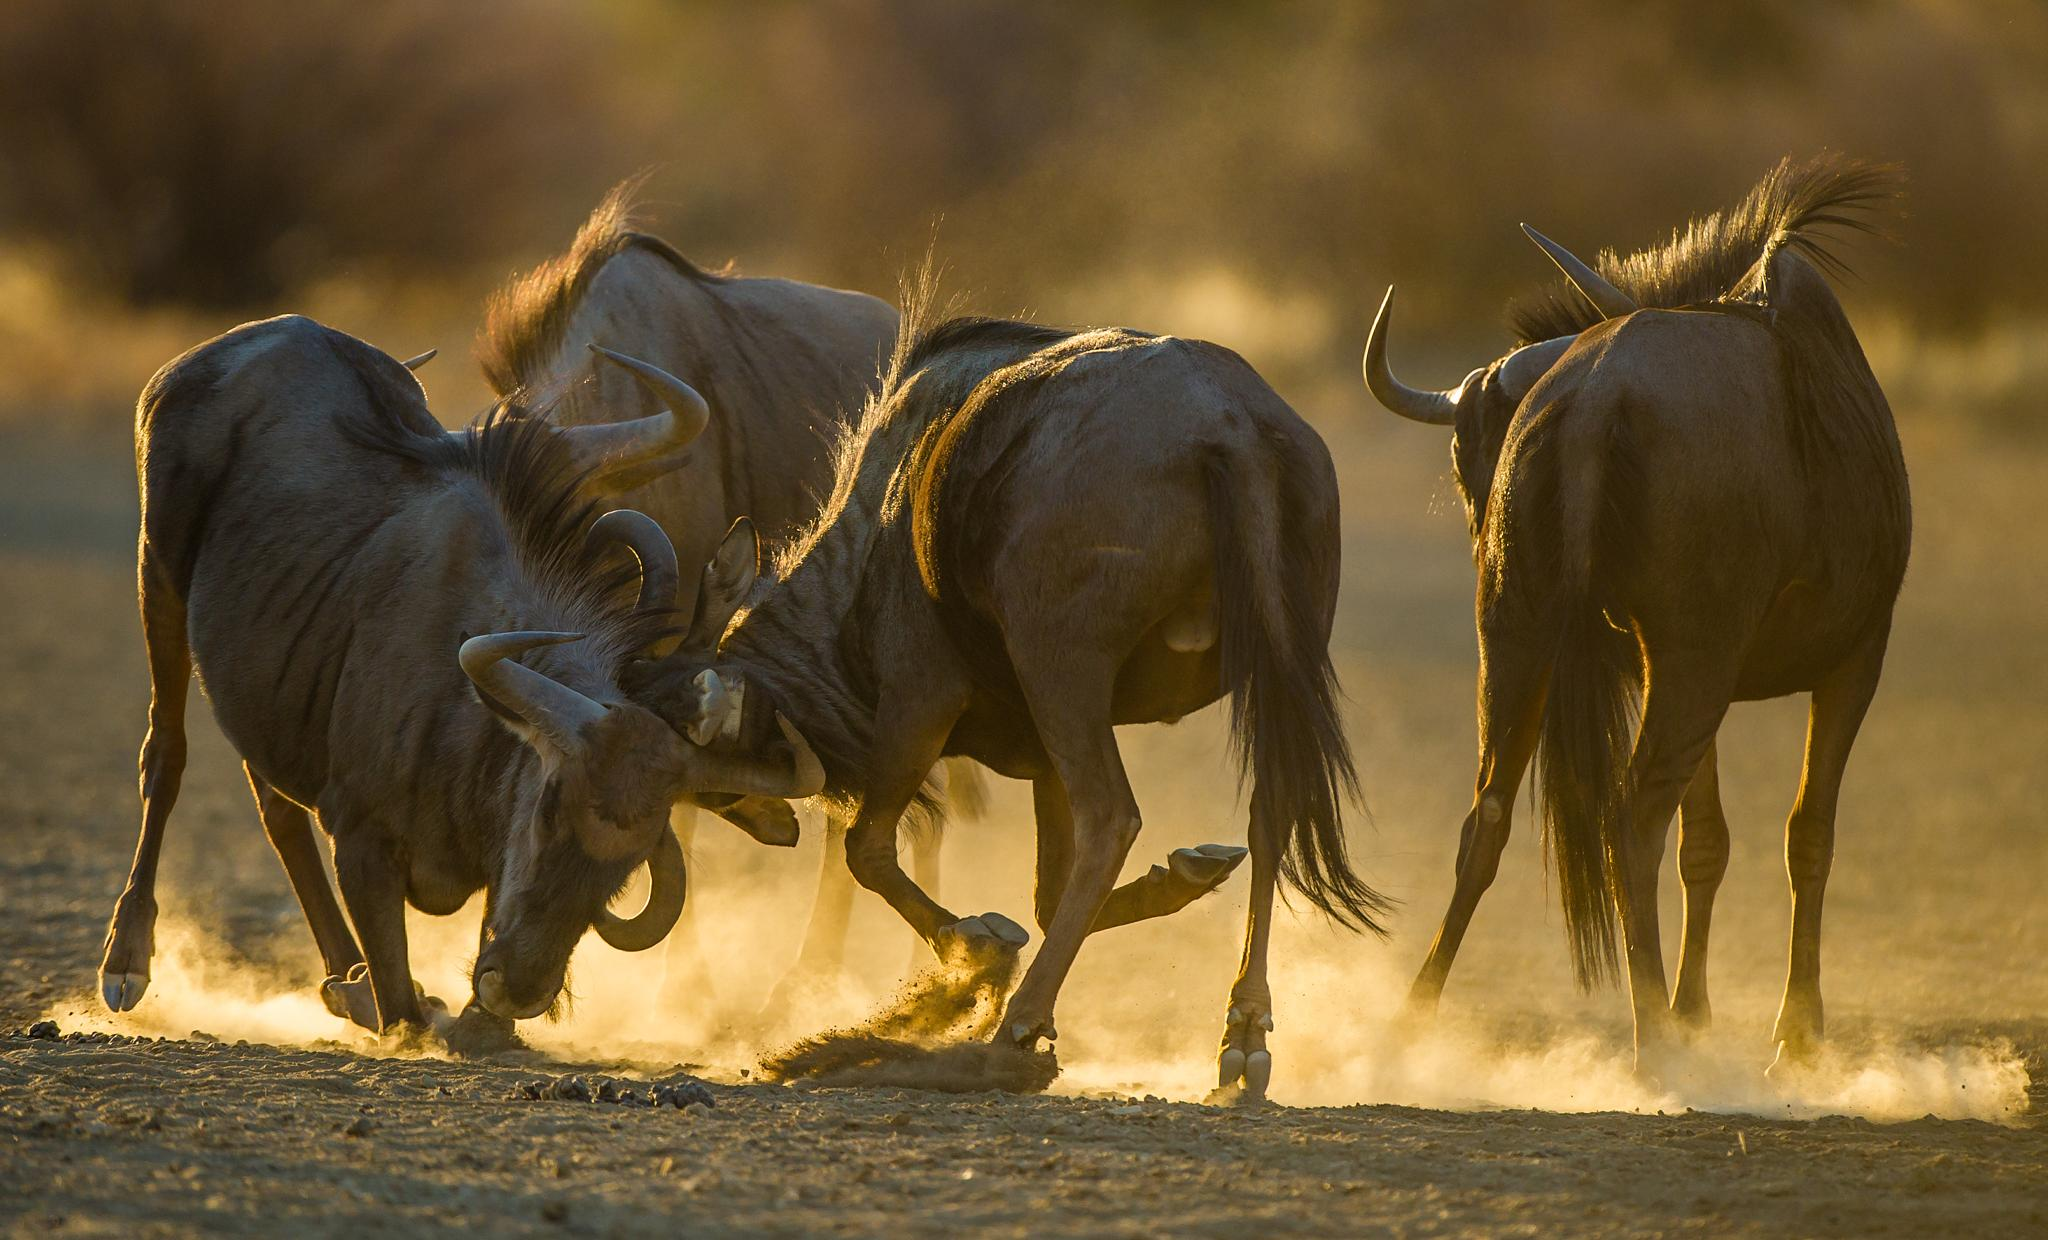 Blue wildebeest Fight in gold by Bridgena Barnard